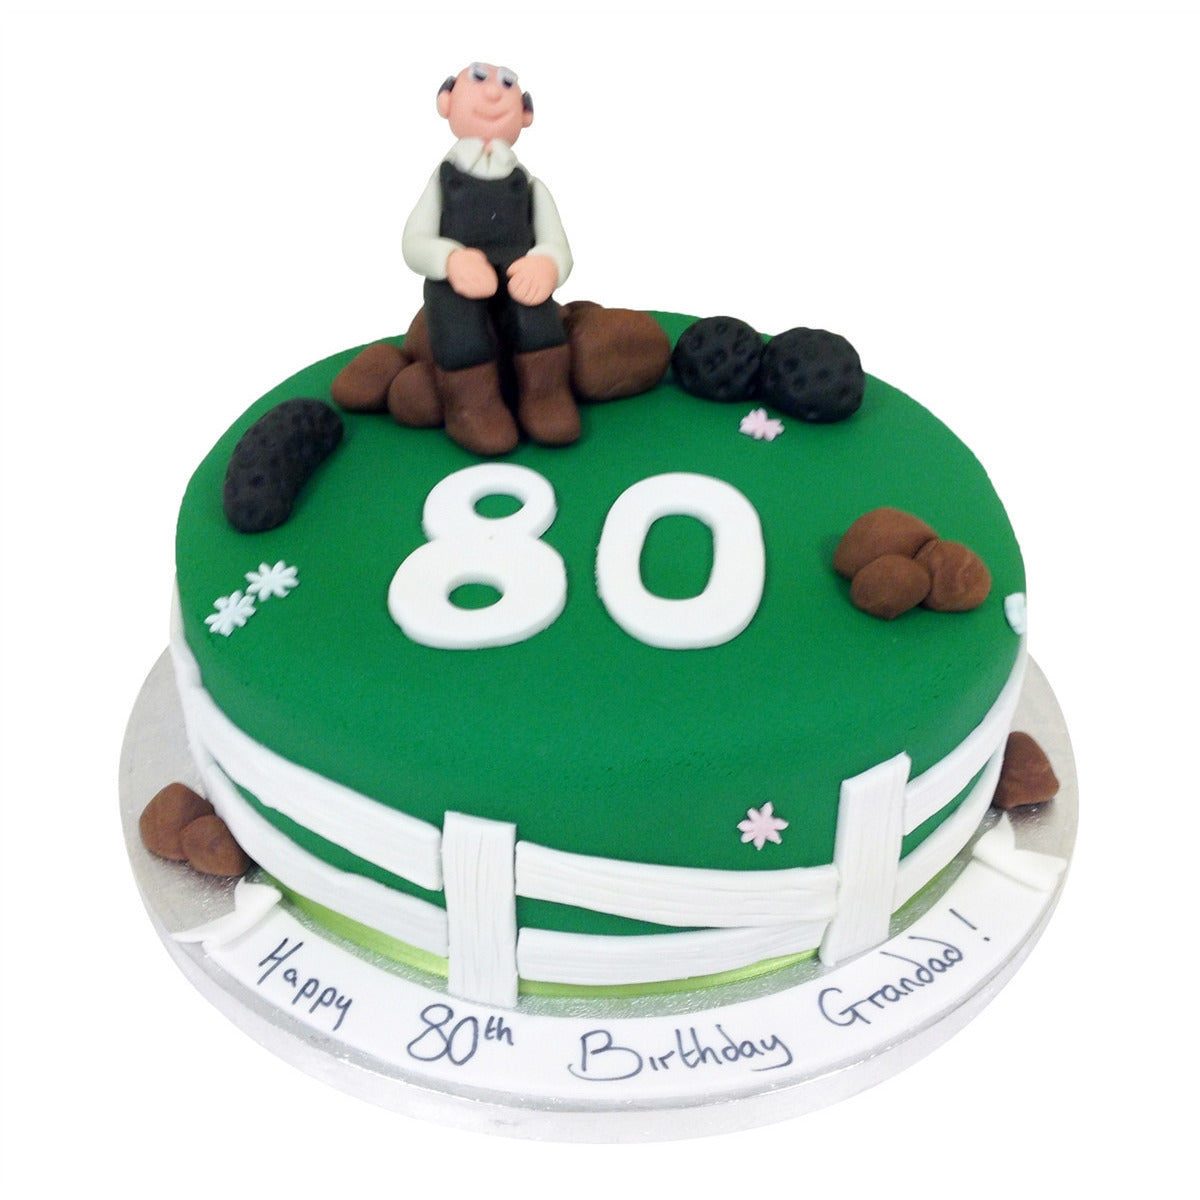 Stupendous 80Th Birthday Cake Buy Online Free Uk Delivery New Cakes Funny Birthday Cards Online Aboleapandamsfinfo